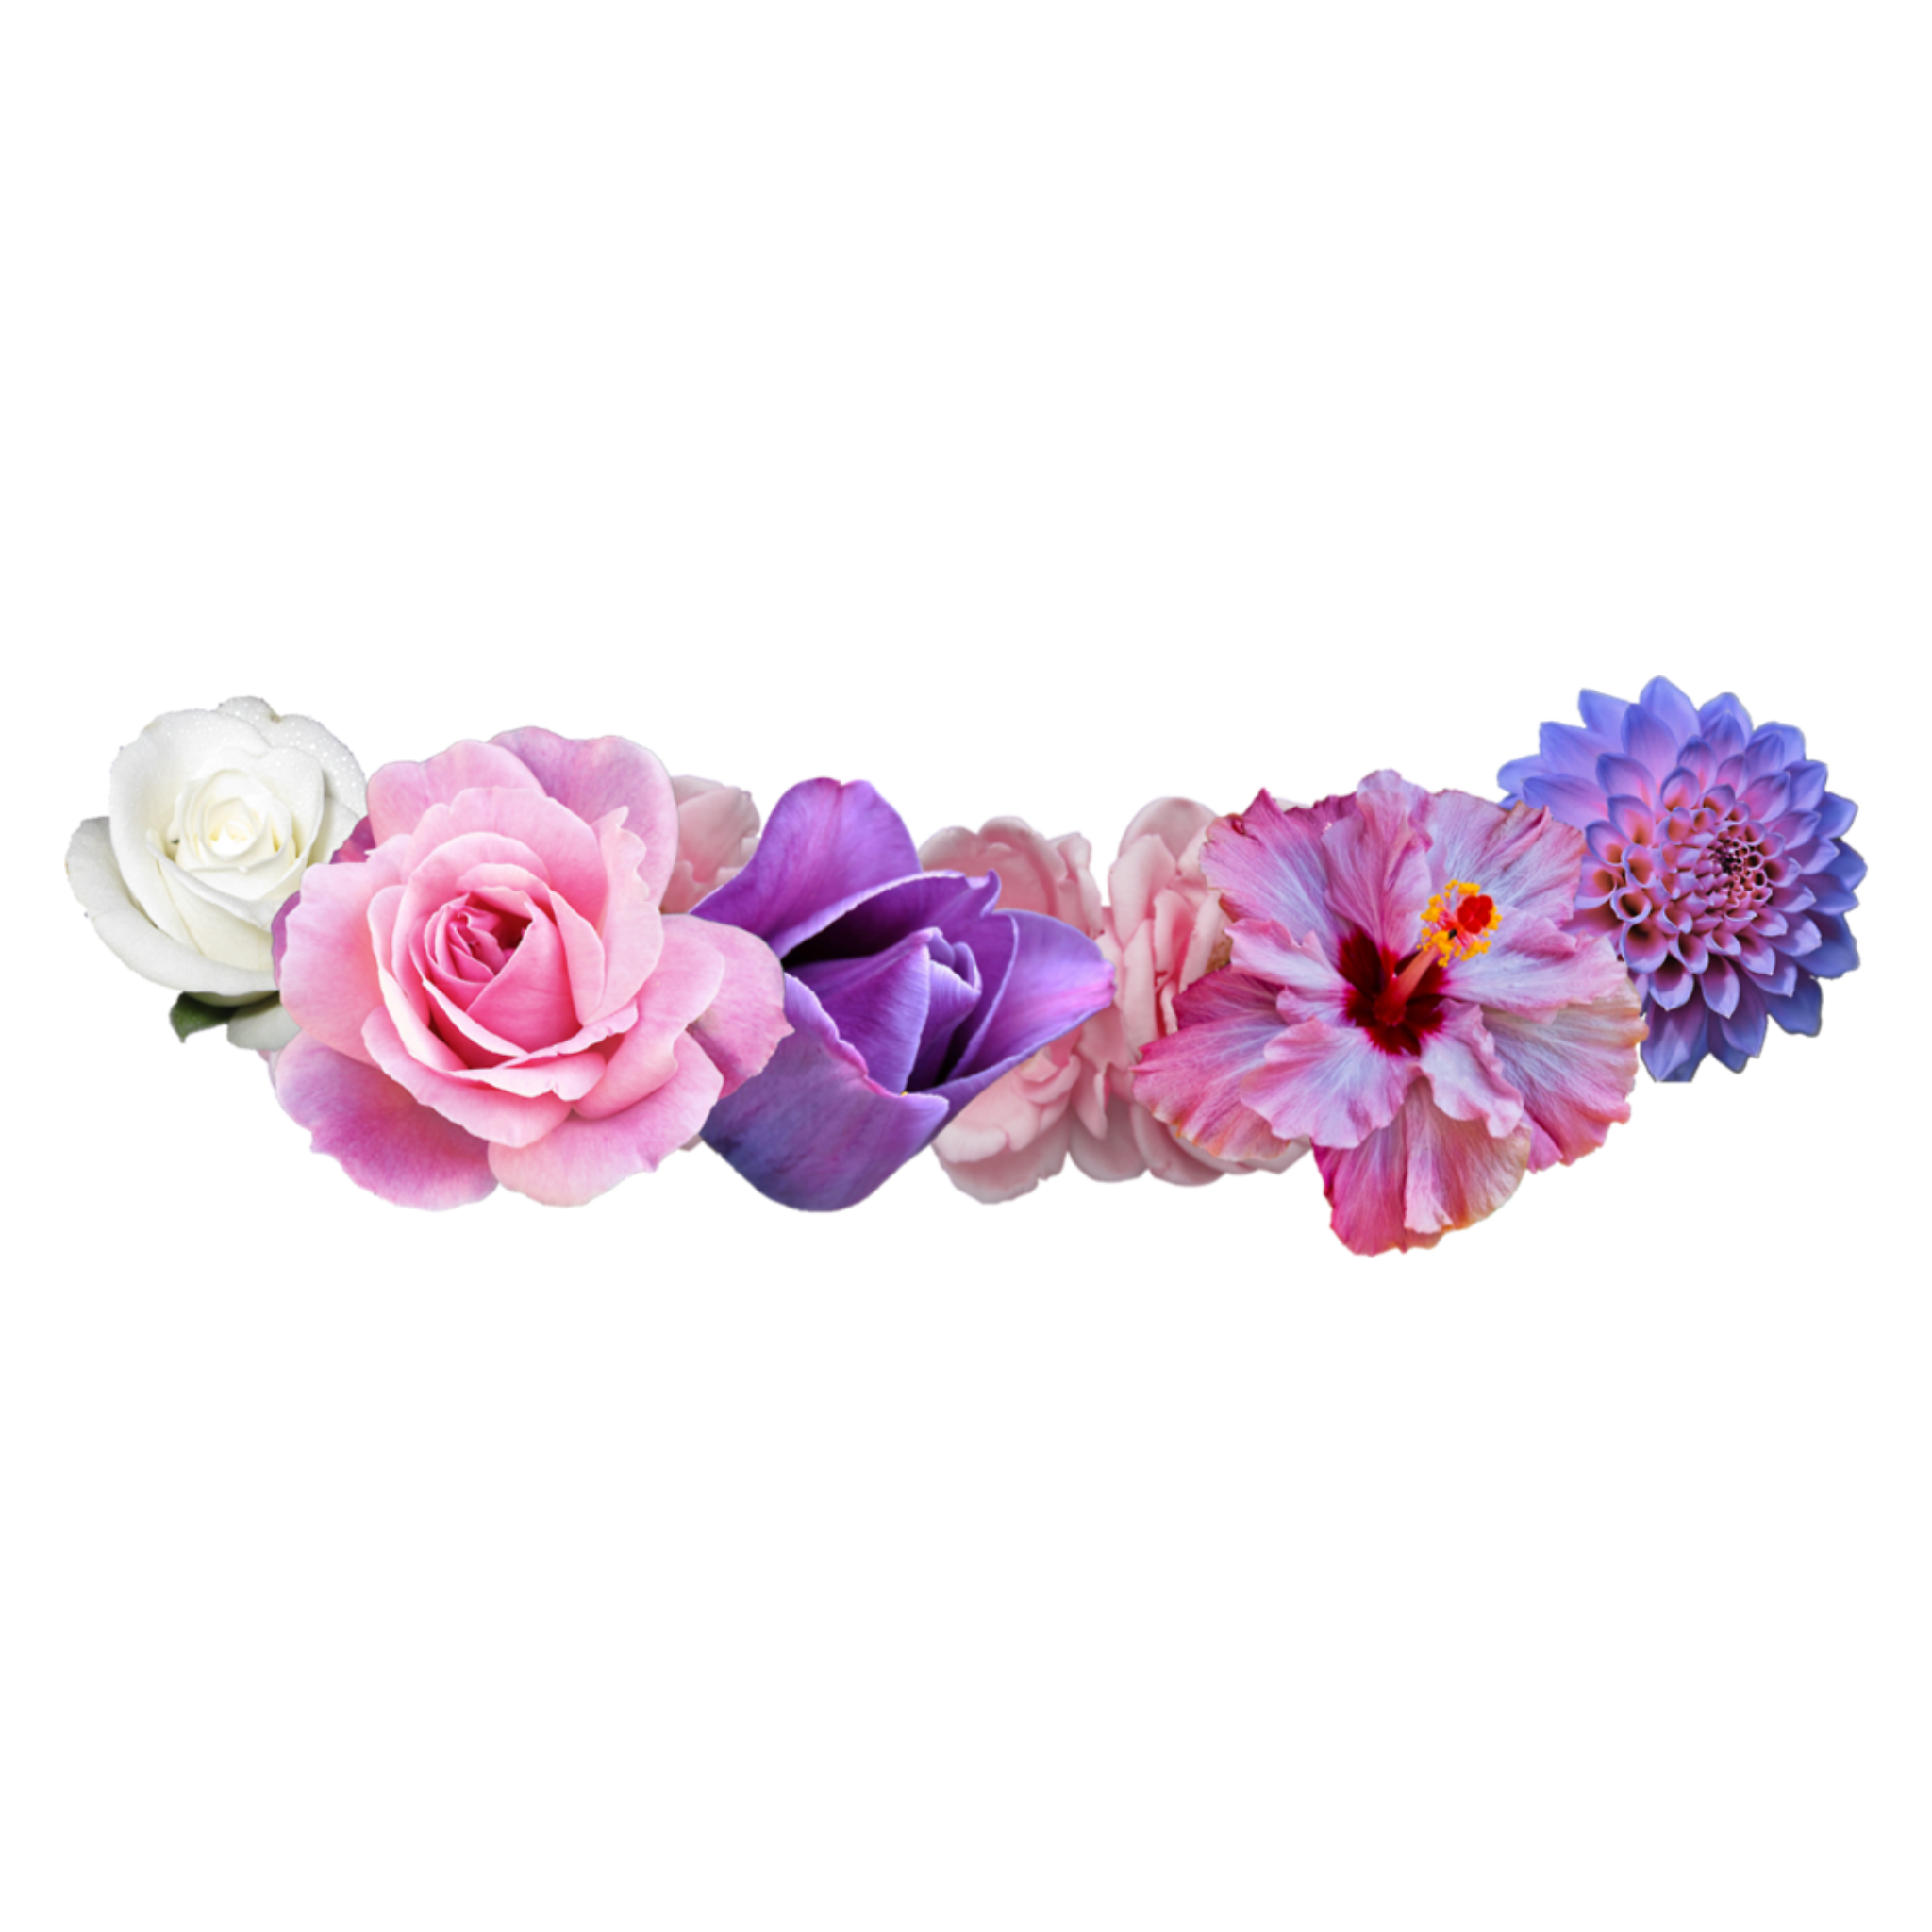 Ftestickers Flowercrowns Freetoedit Remixit Flower Crown Tumblr Tumblr Flower Transparent Flowers